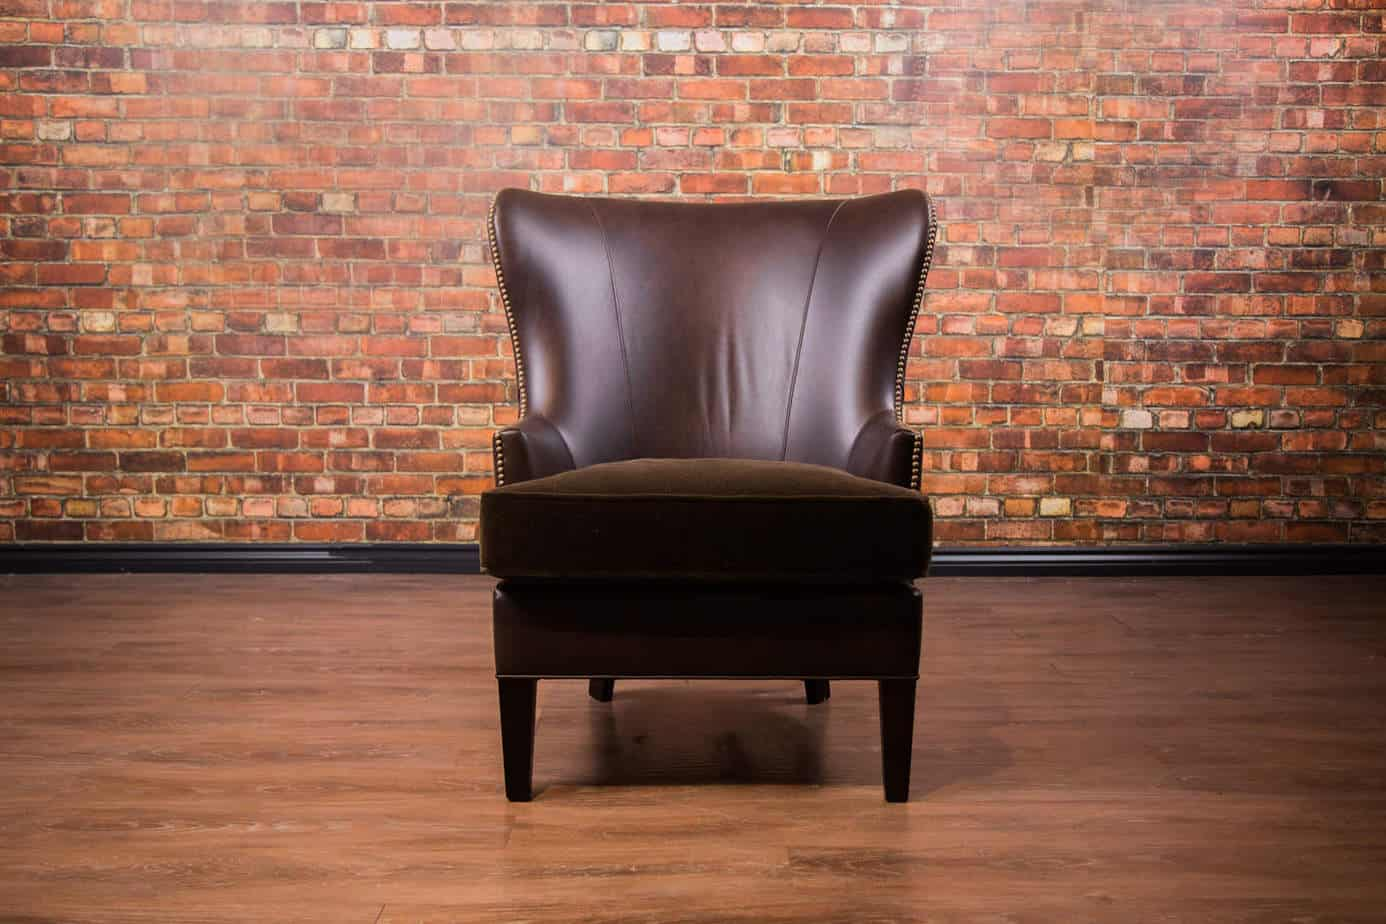 Leather Furniture Traveler Collection: The Prince Edward Leather Chair Collection